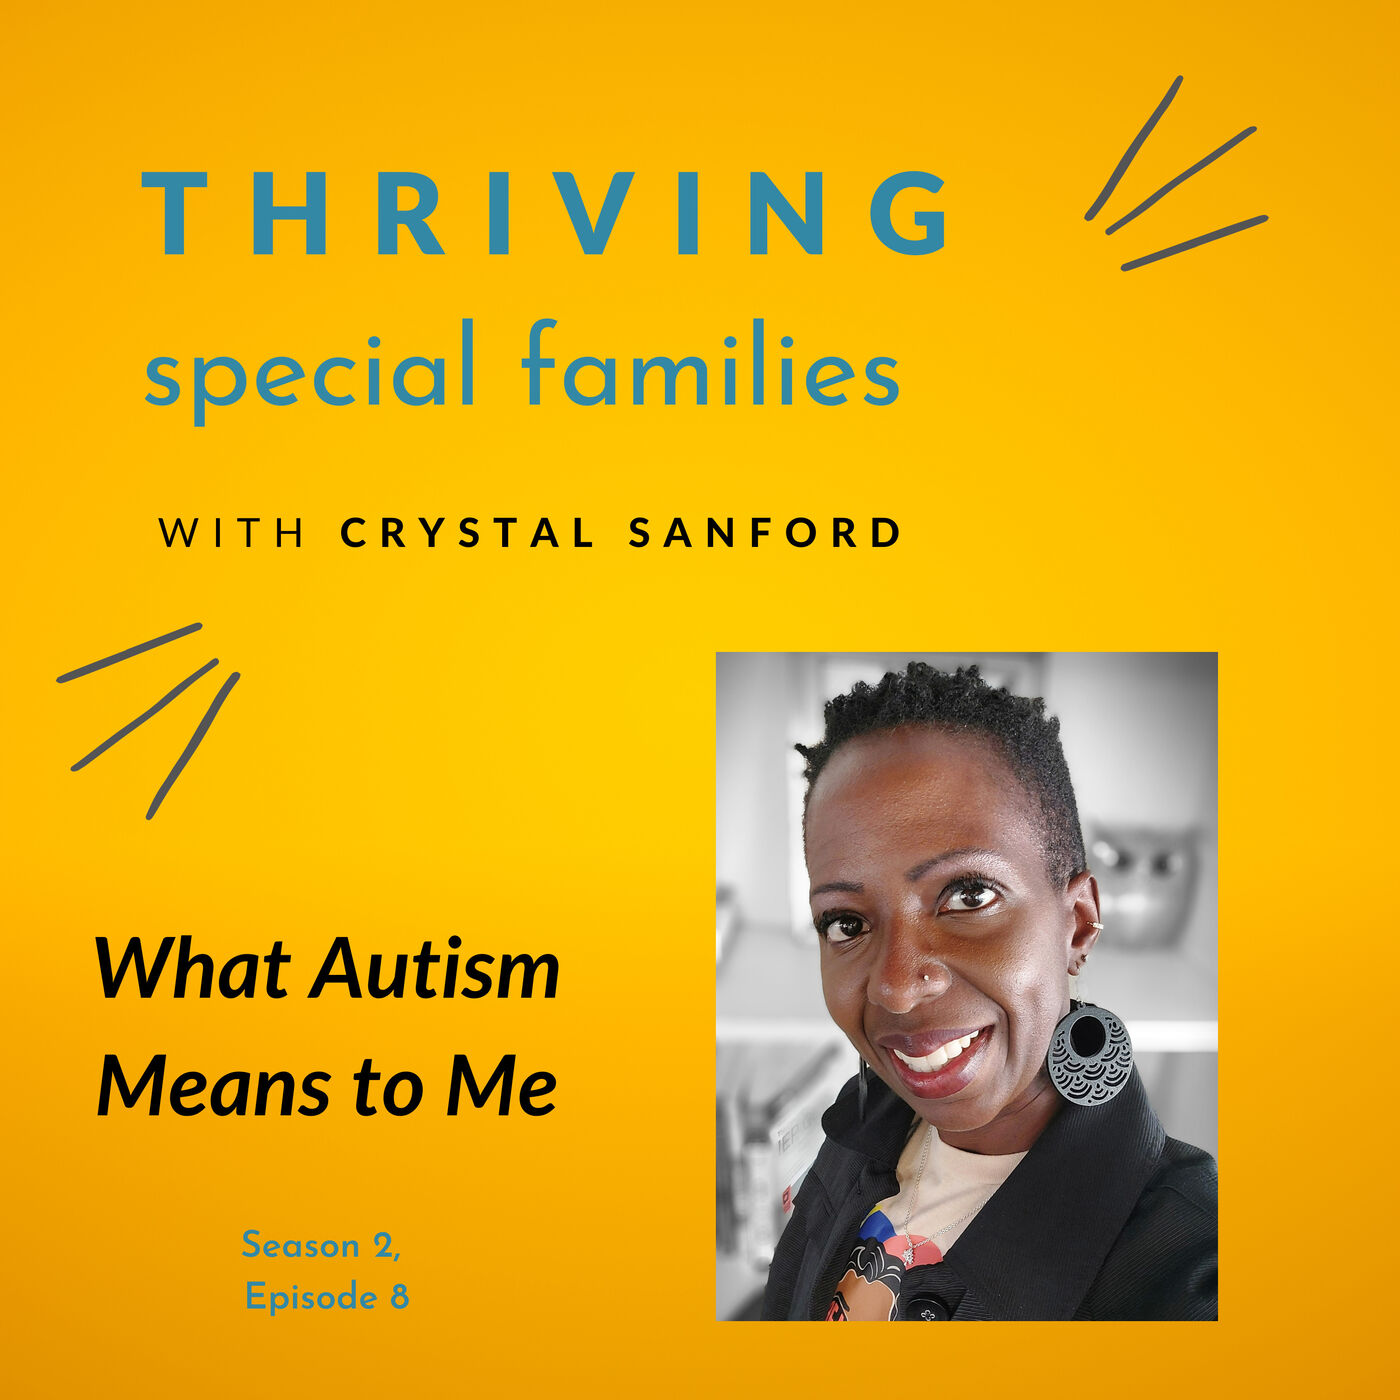 What Autism Means To Me